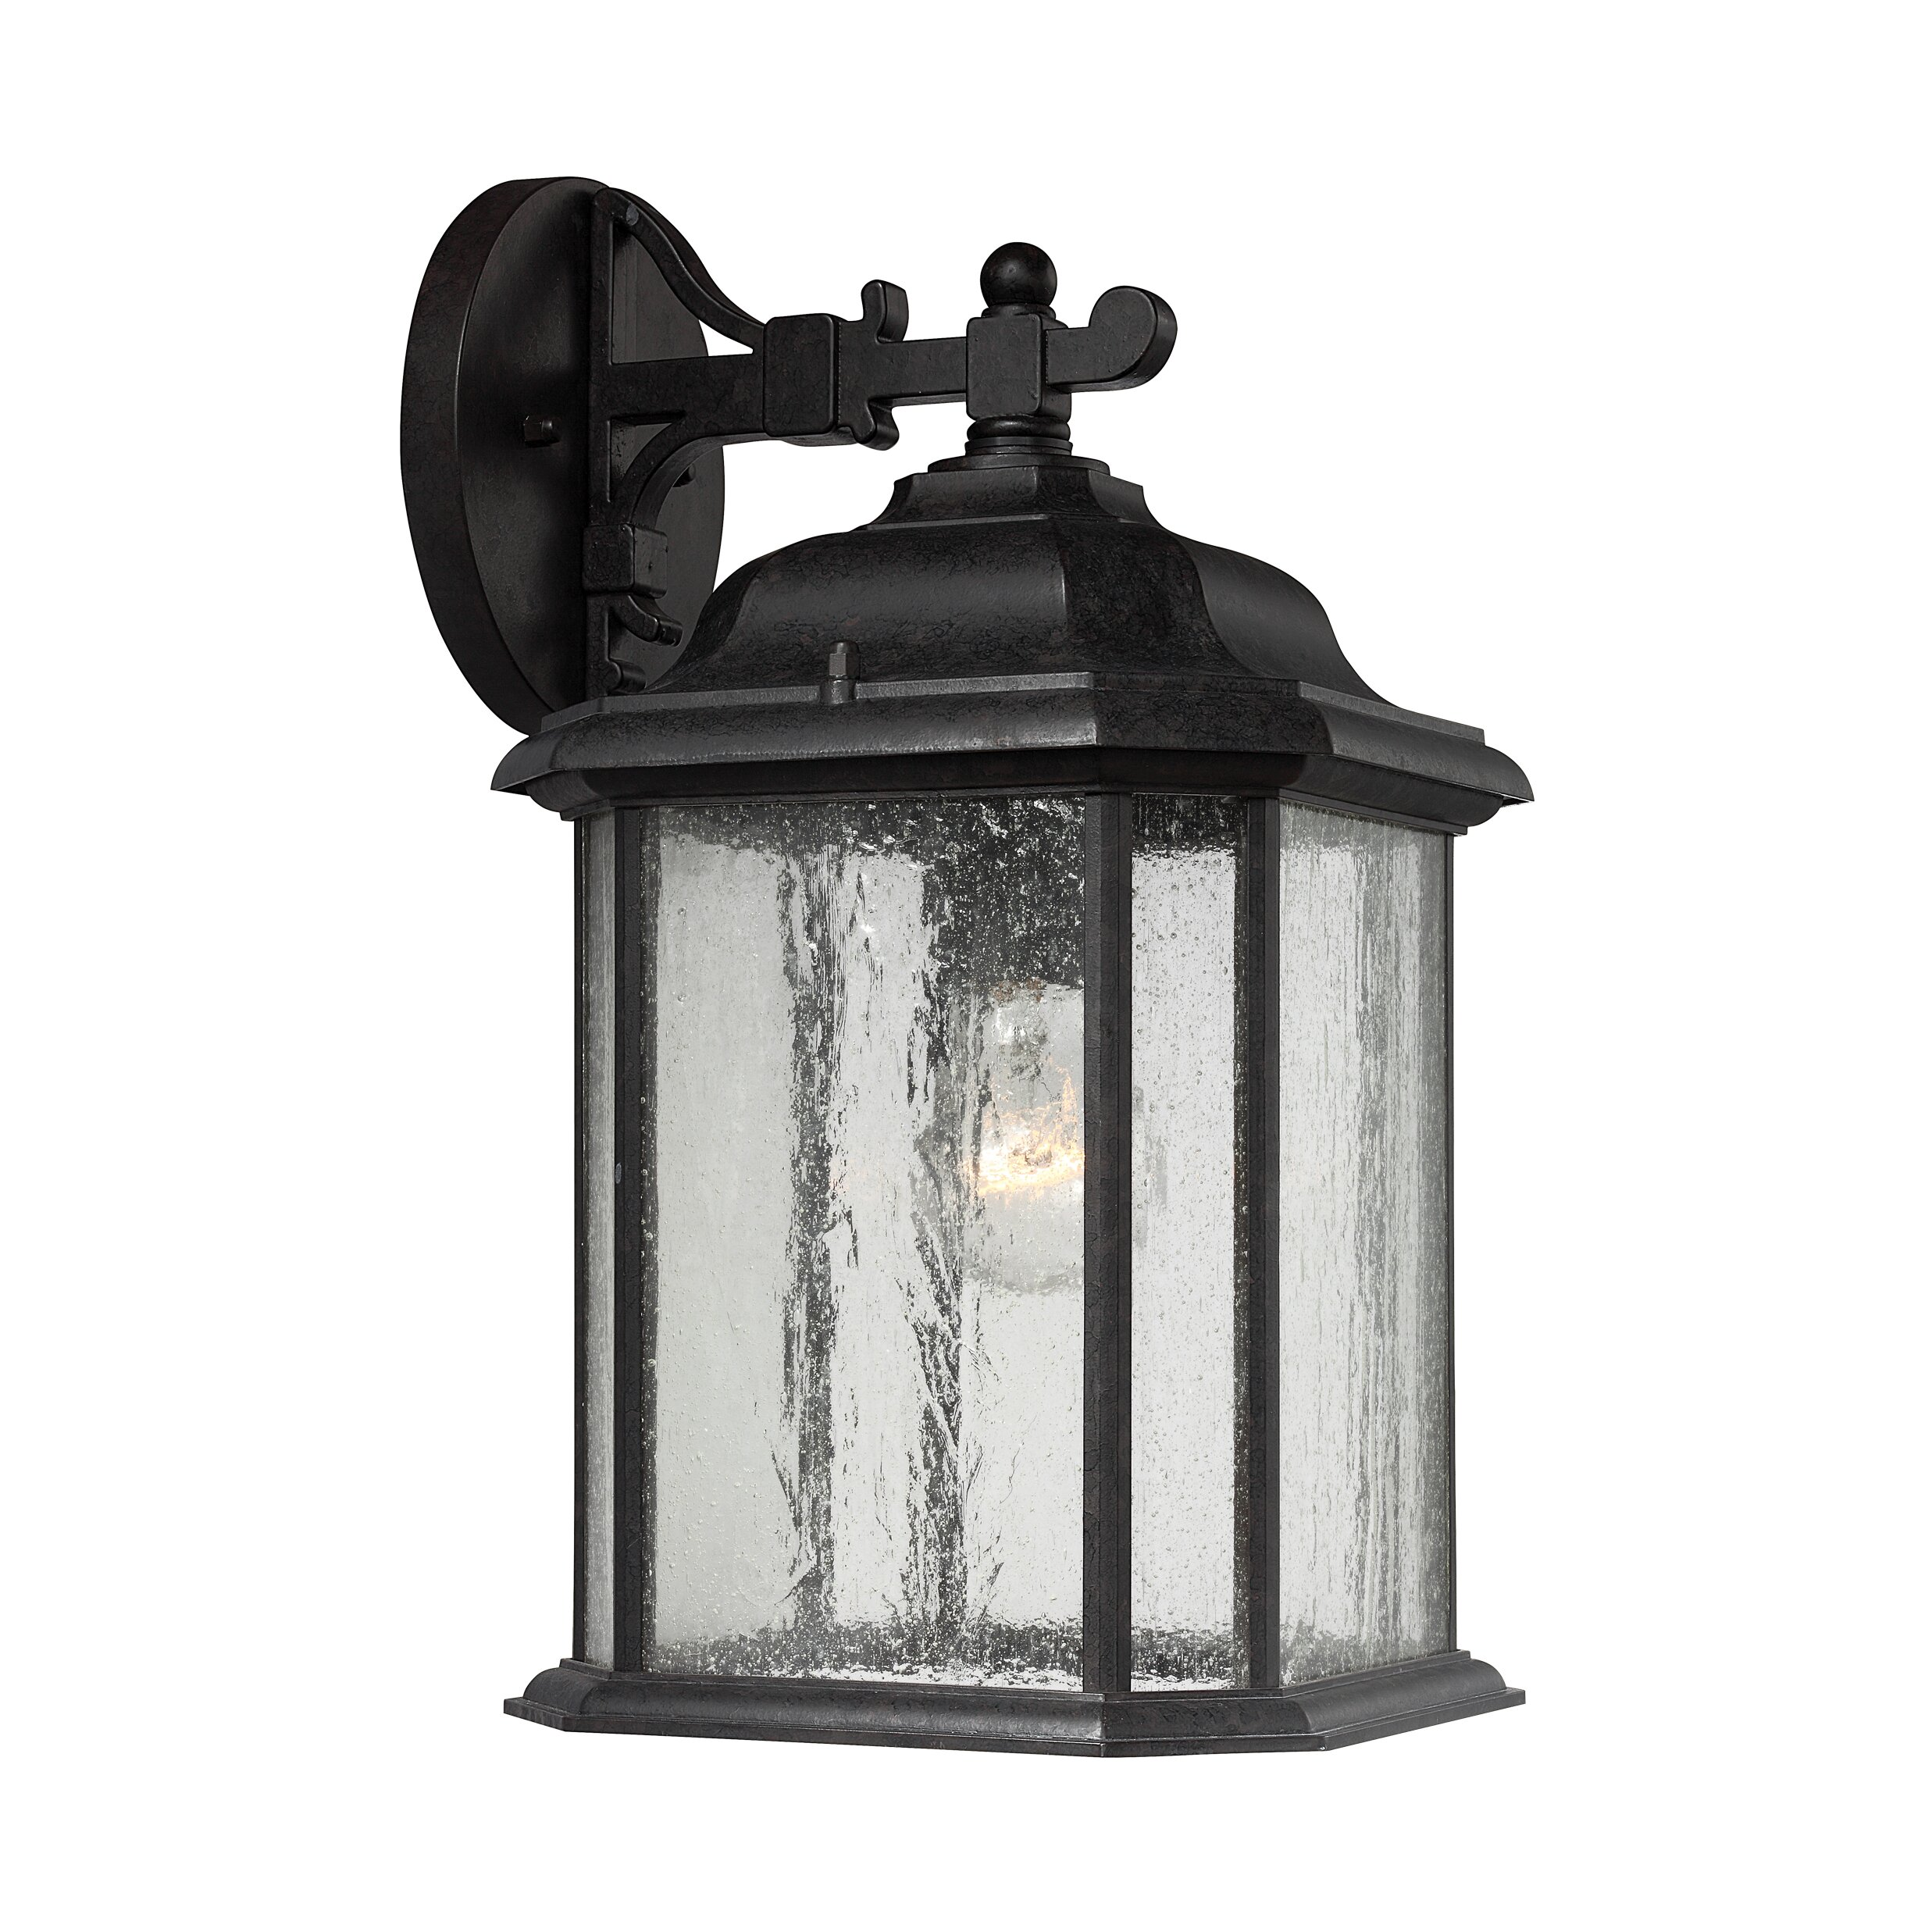 Sea Gull Lights: Sea Gull Lighting Kent 1 Light Outdoor Wall Lantern